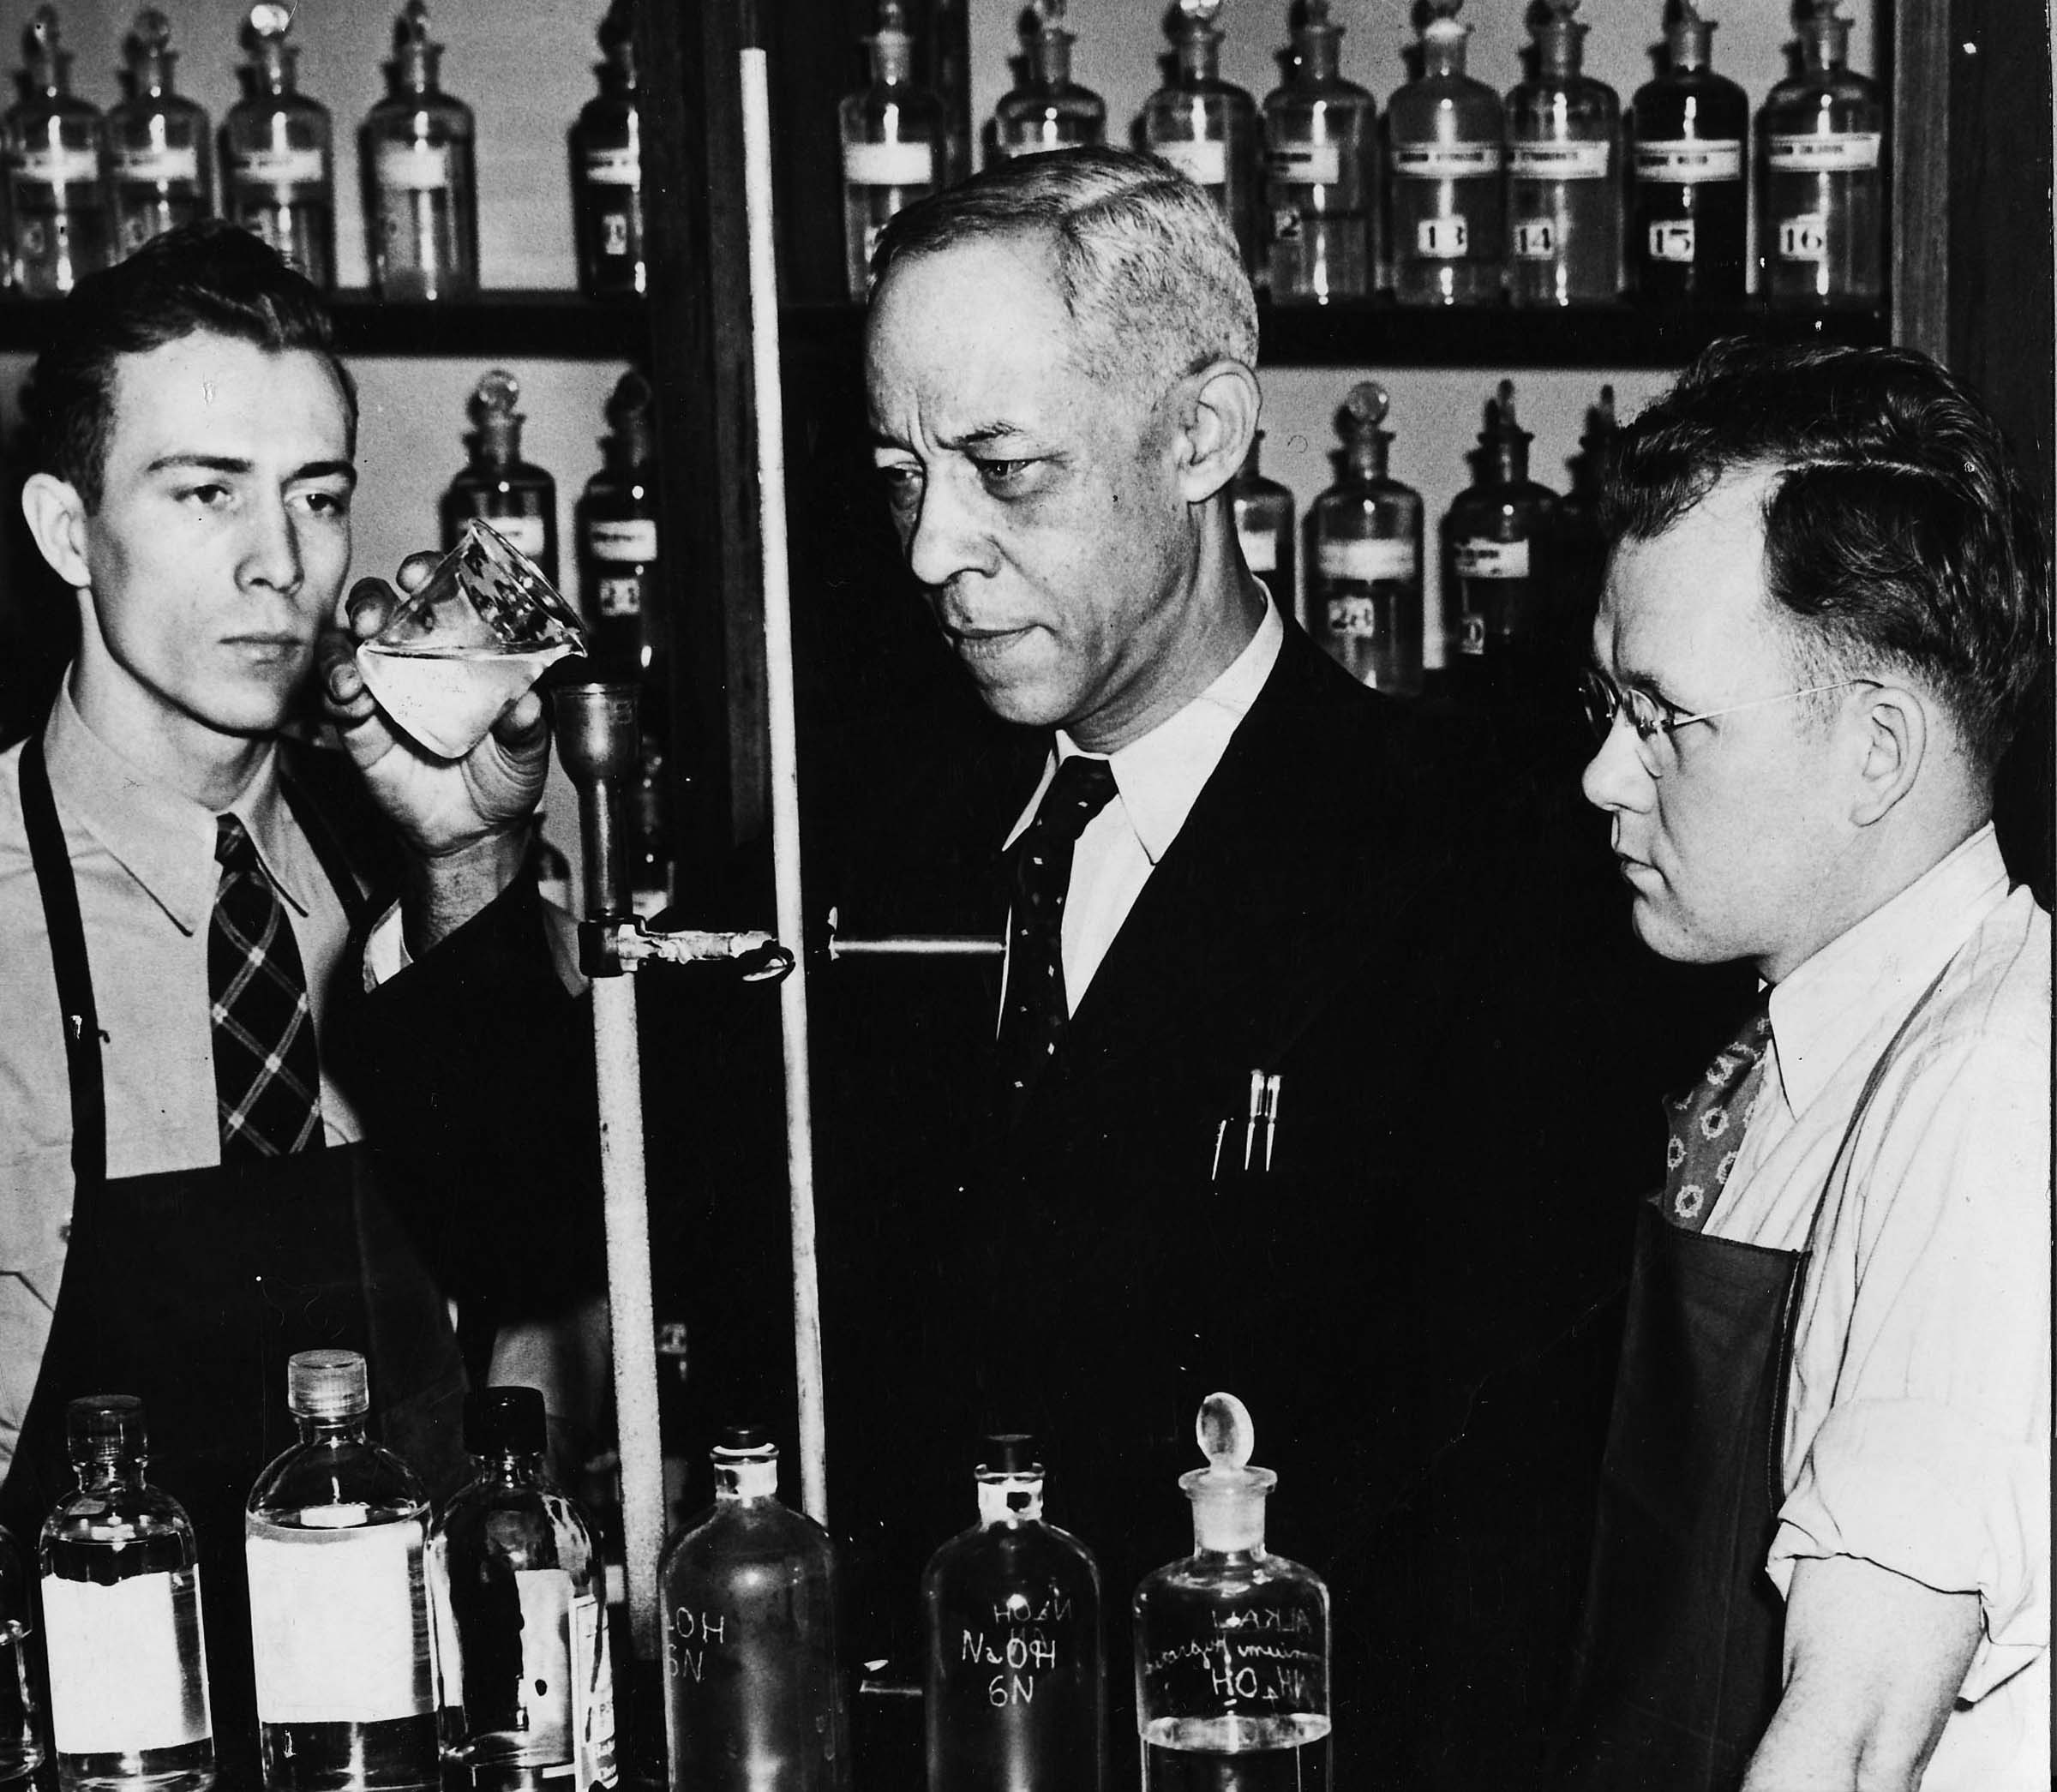 Edward Chandler (center) teaching chemistry at Roosevelt University, ca. late 1940s or early 1950s. Courtesy Roosevelt University Archives.